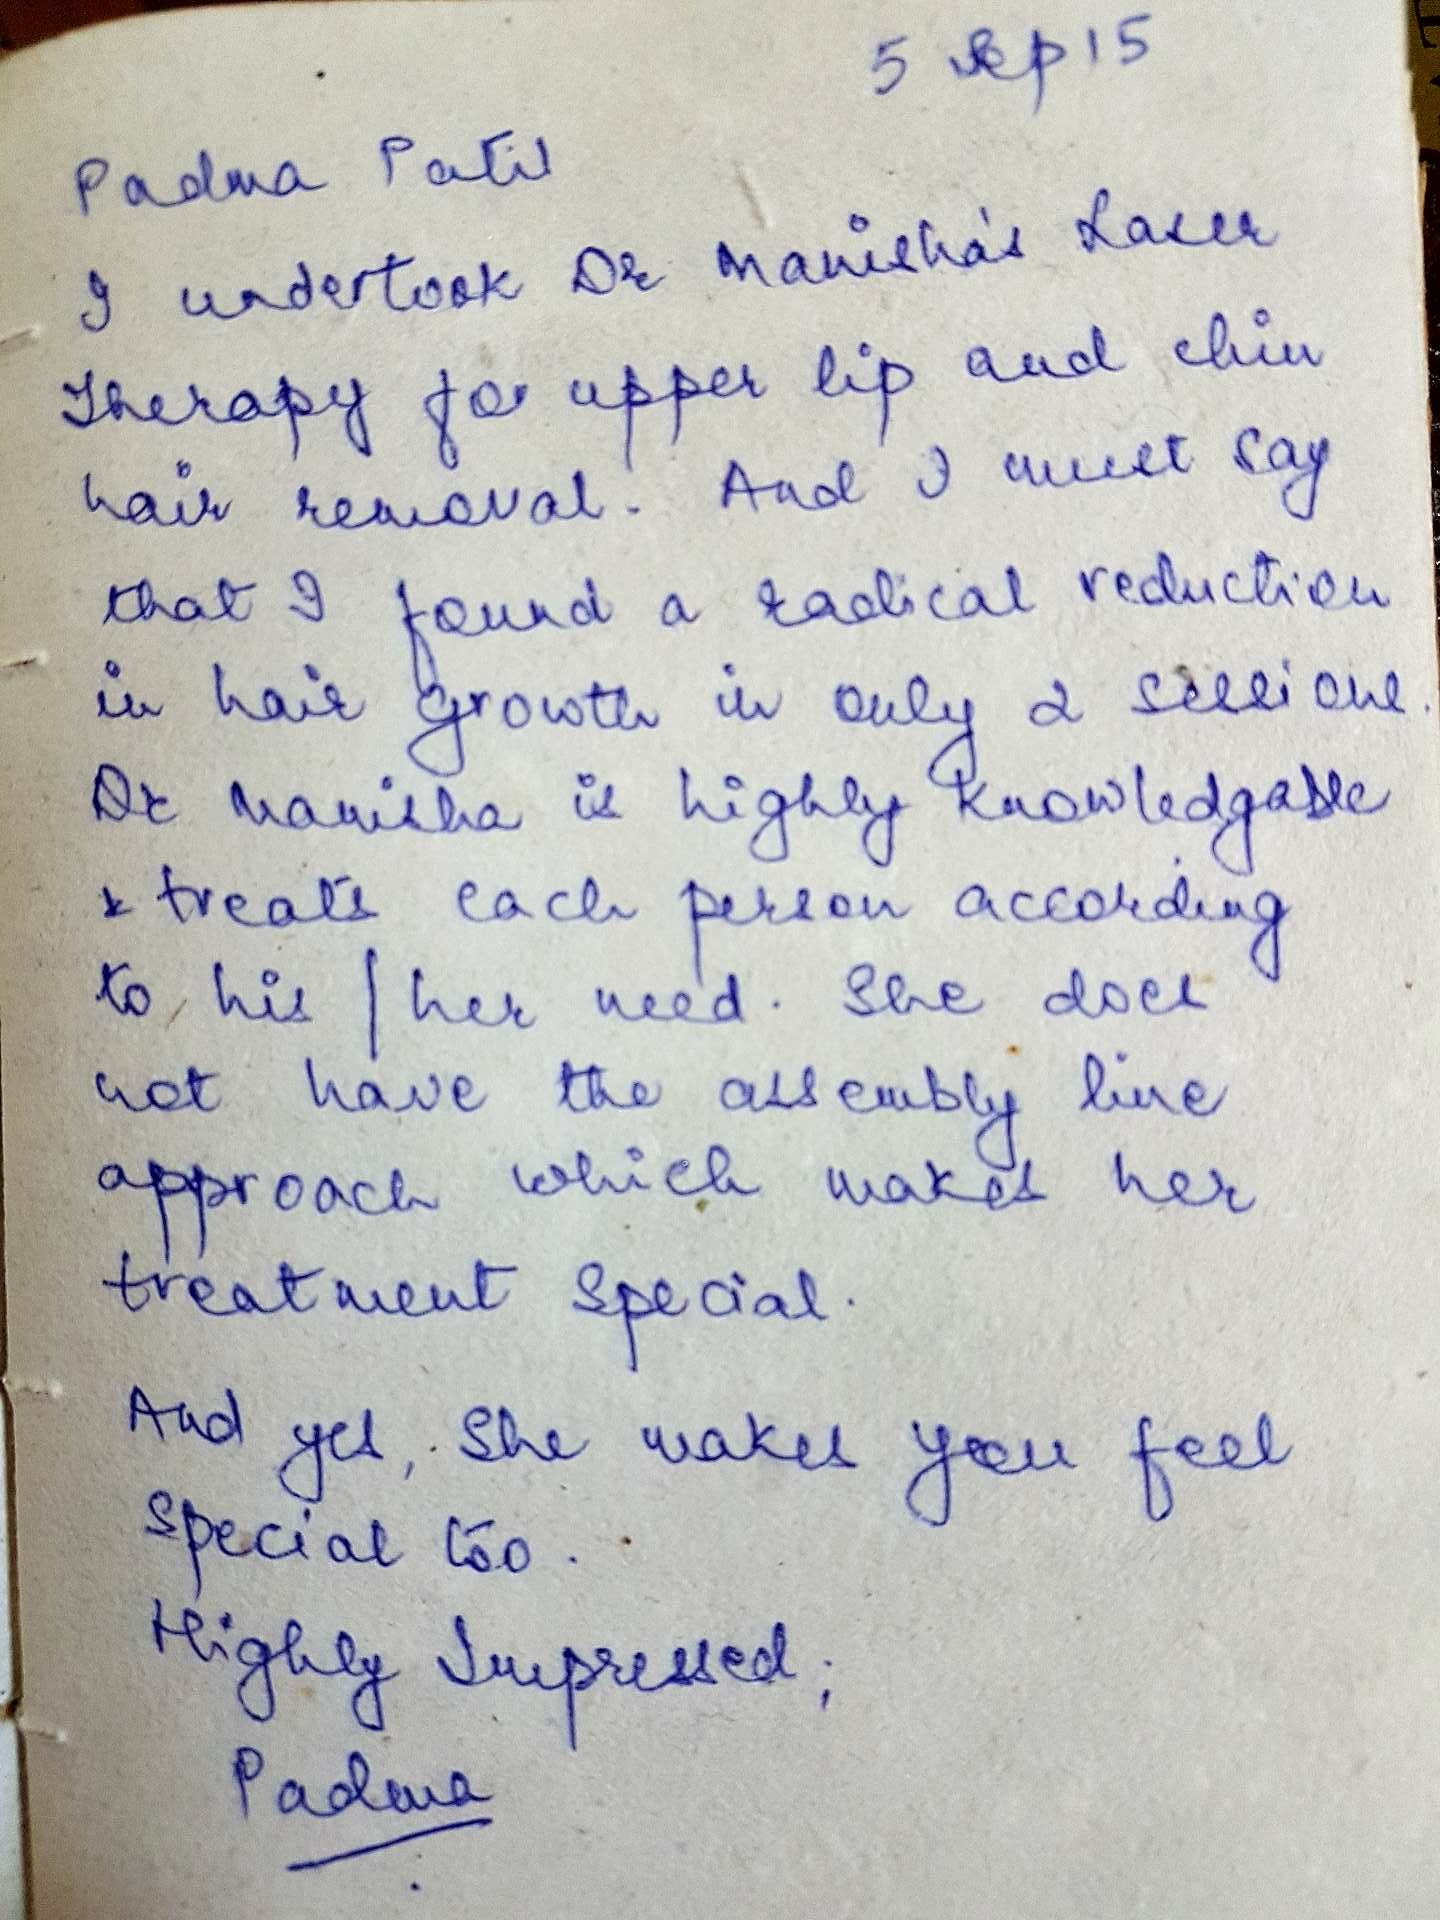 Feedback Permanent laser hair removal